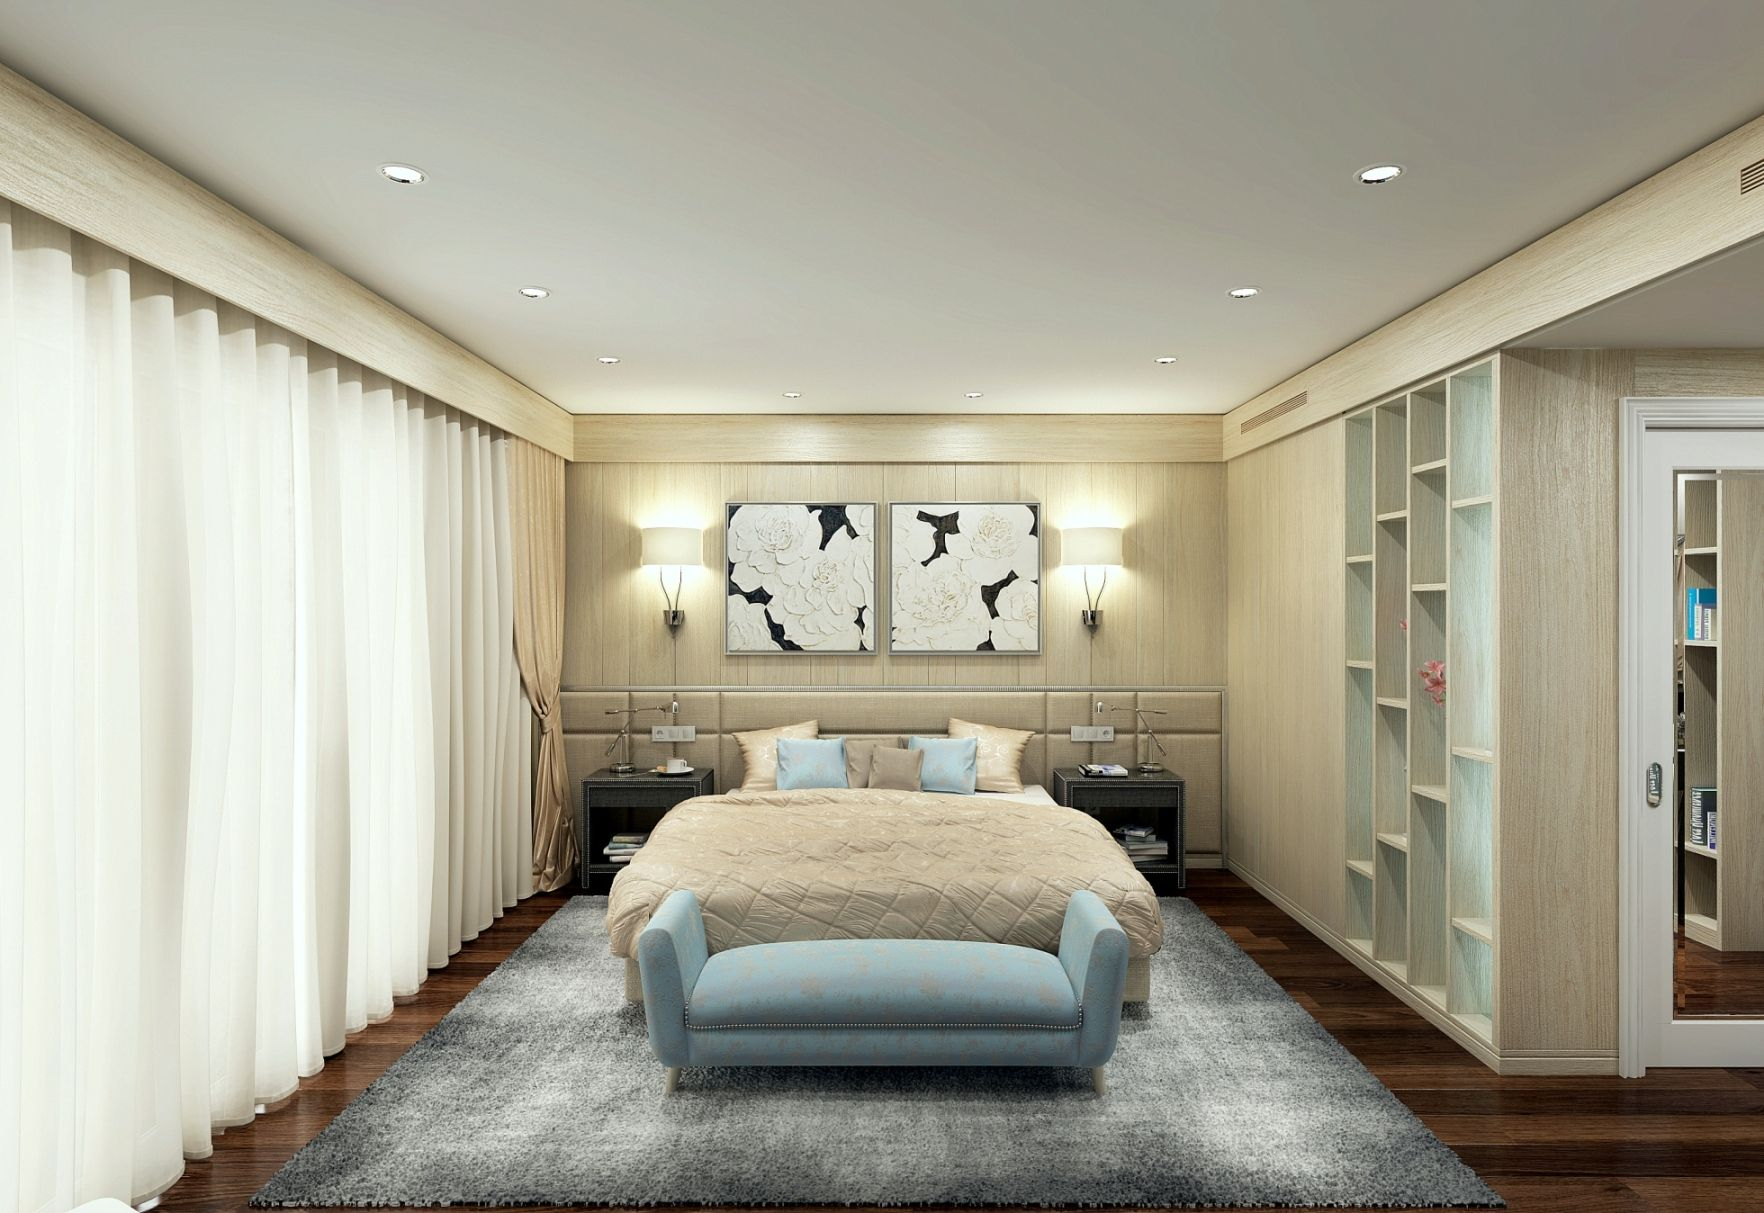 Design Of Master Bedroom Interior For Private House In Castelldefels 08860 Barcelona Spain Alexander